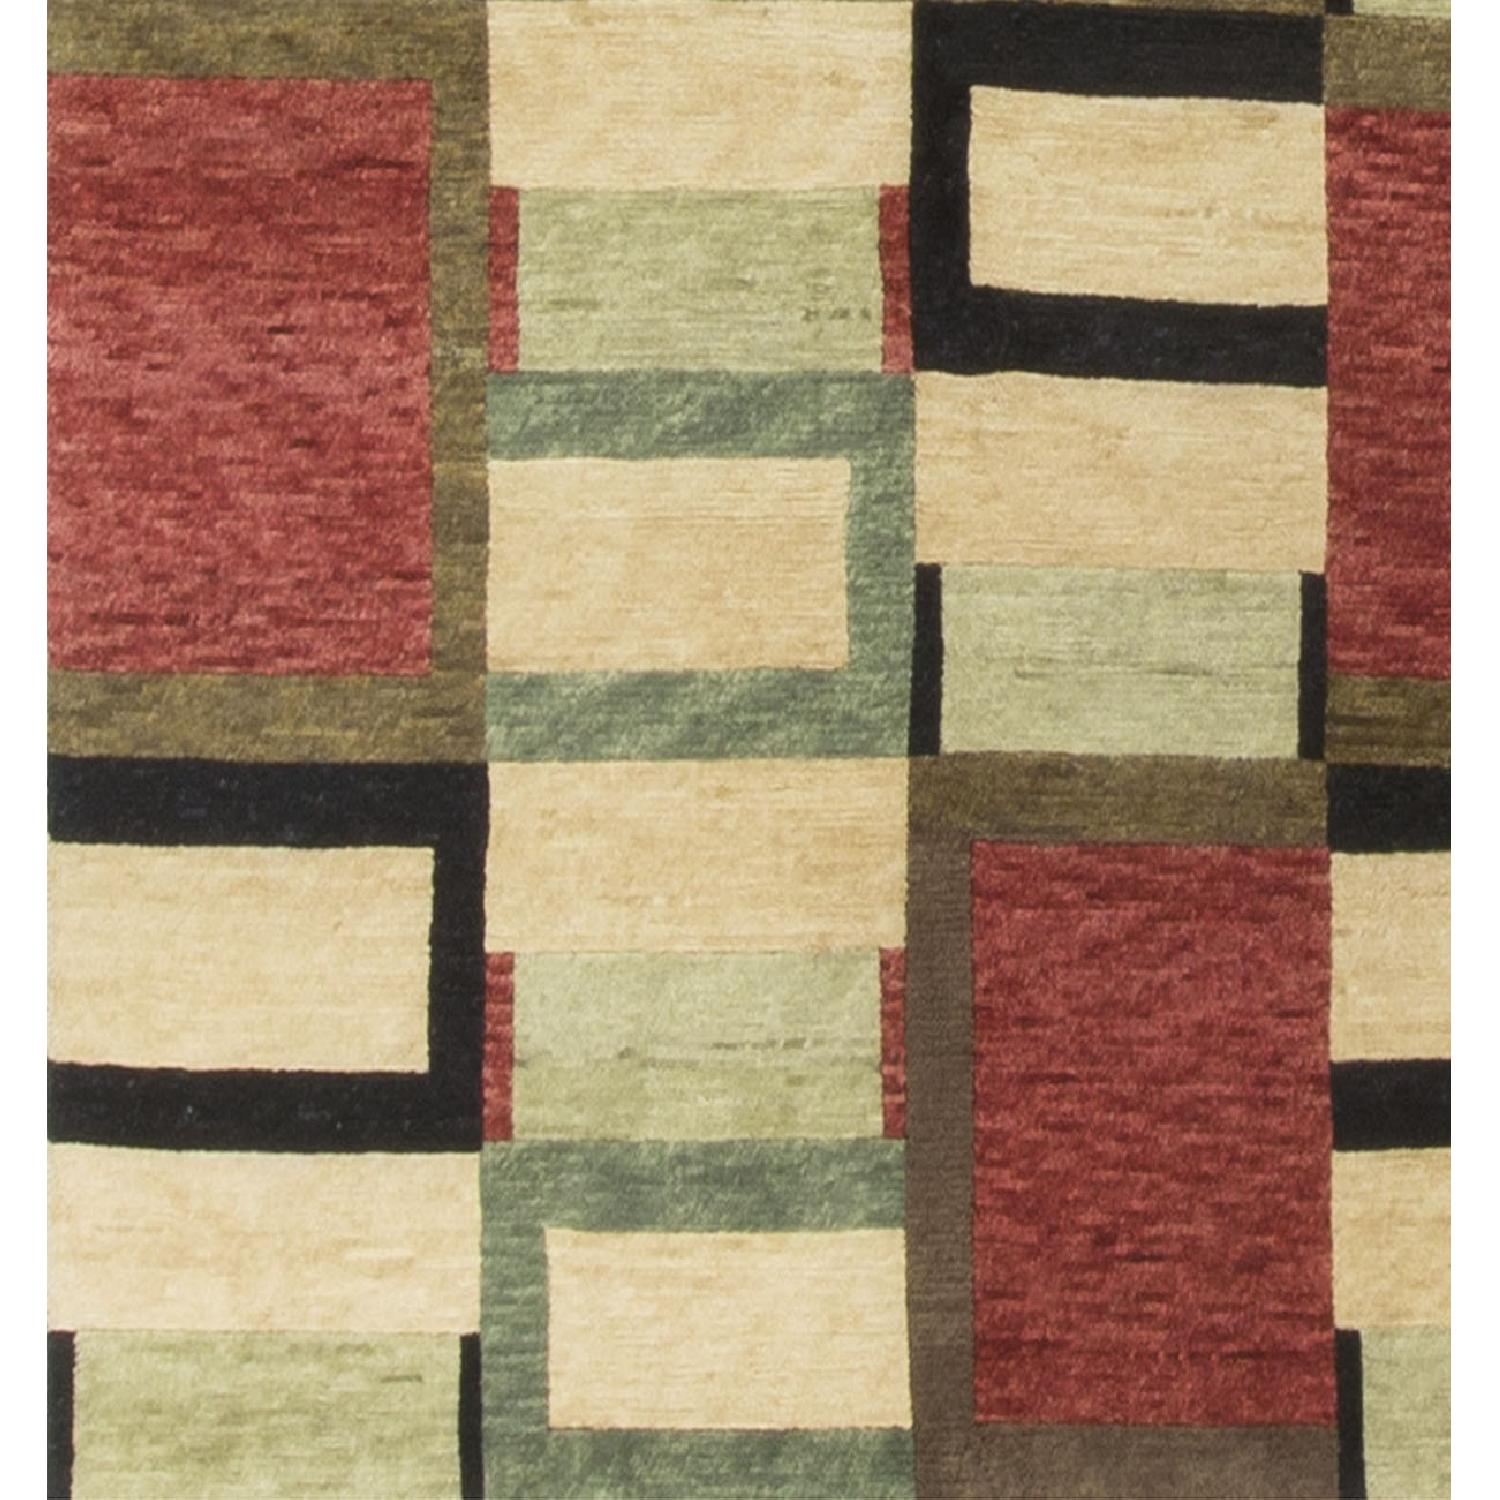 Modern Contemporary Hand Knotted Wool Rug in Red/Black/Beige - image-3